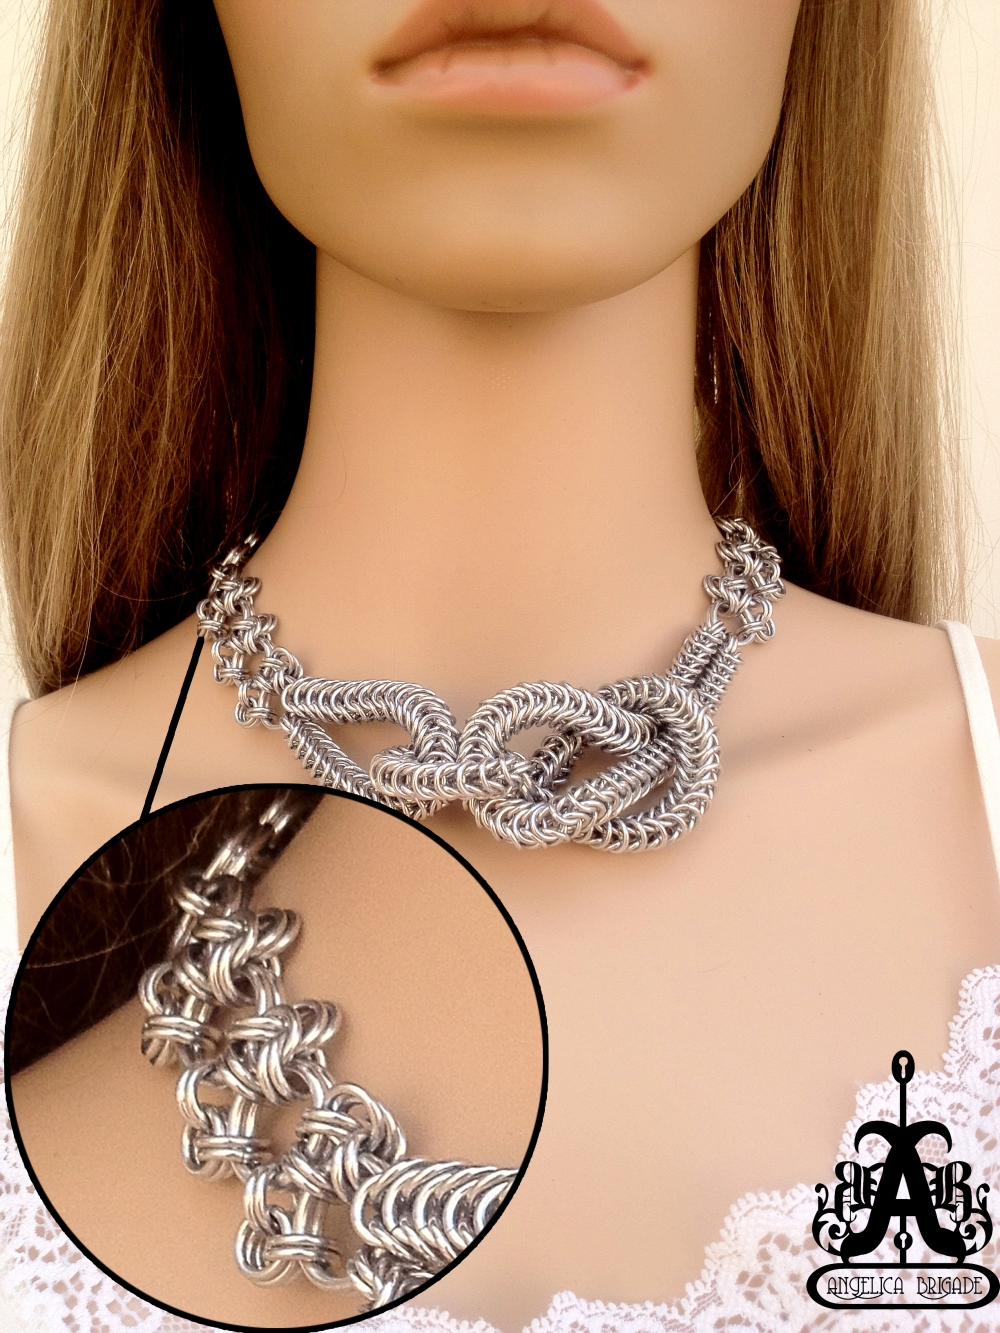 After, High Quality Jump Rings, Angelica Brigade Knott Necklace